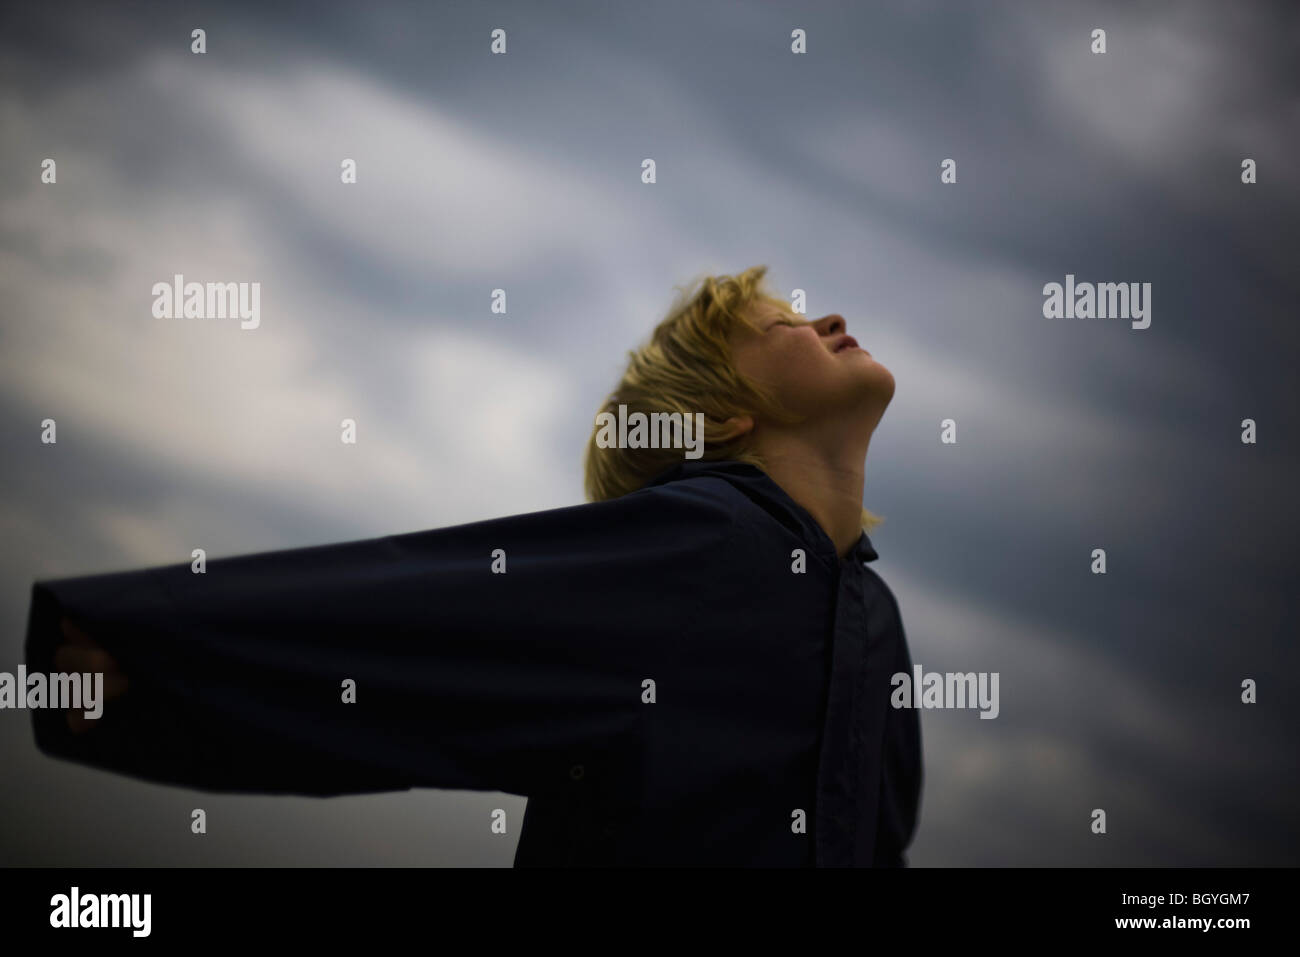 Boy with arms outstretched, head back, looking up at sky - Stock Image